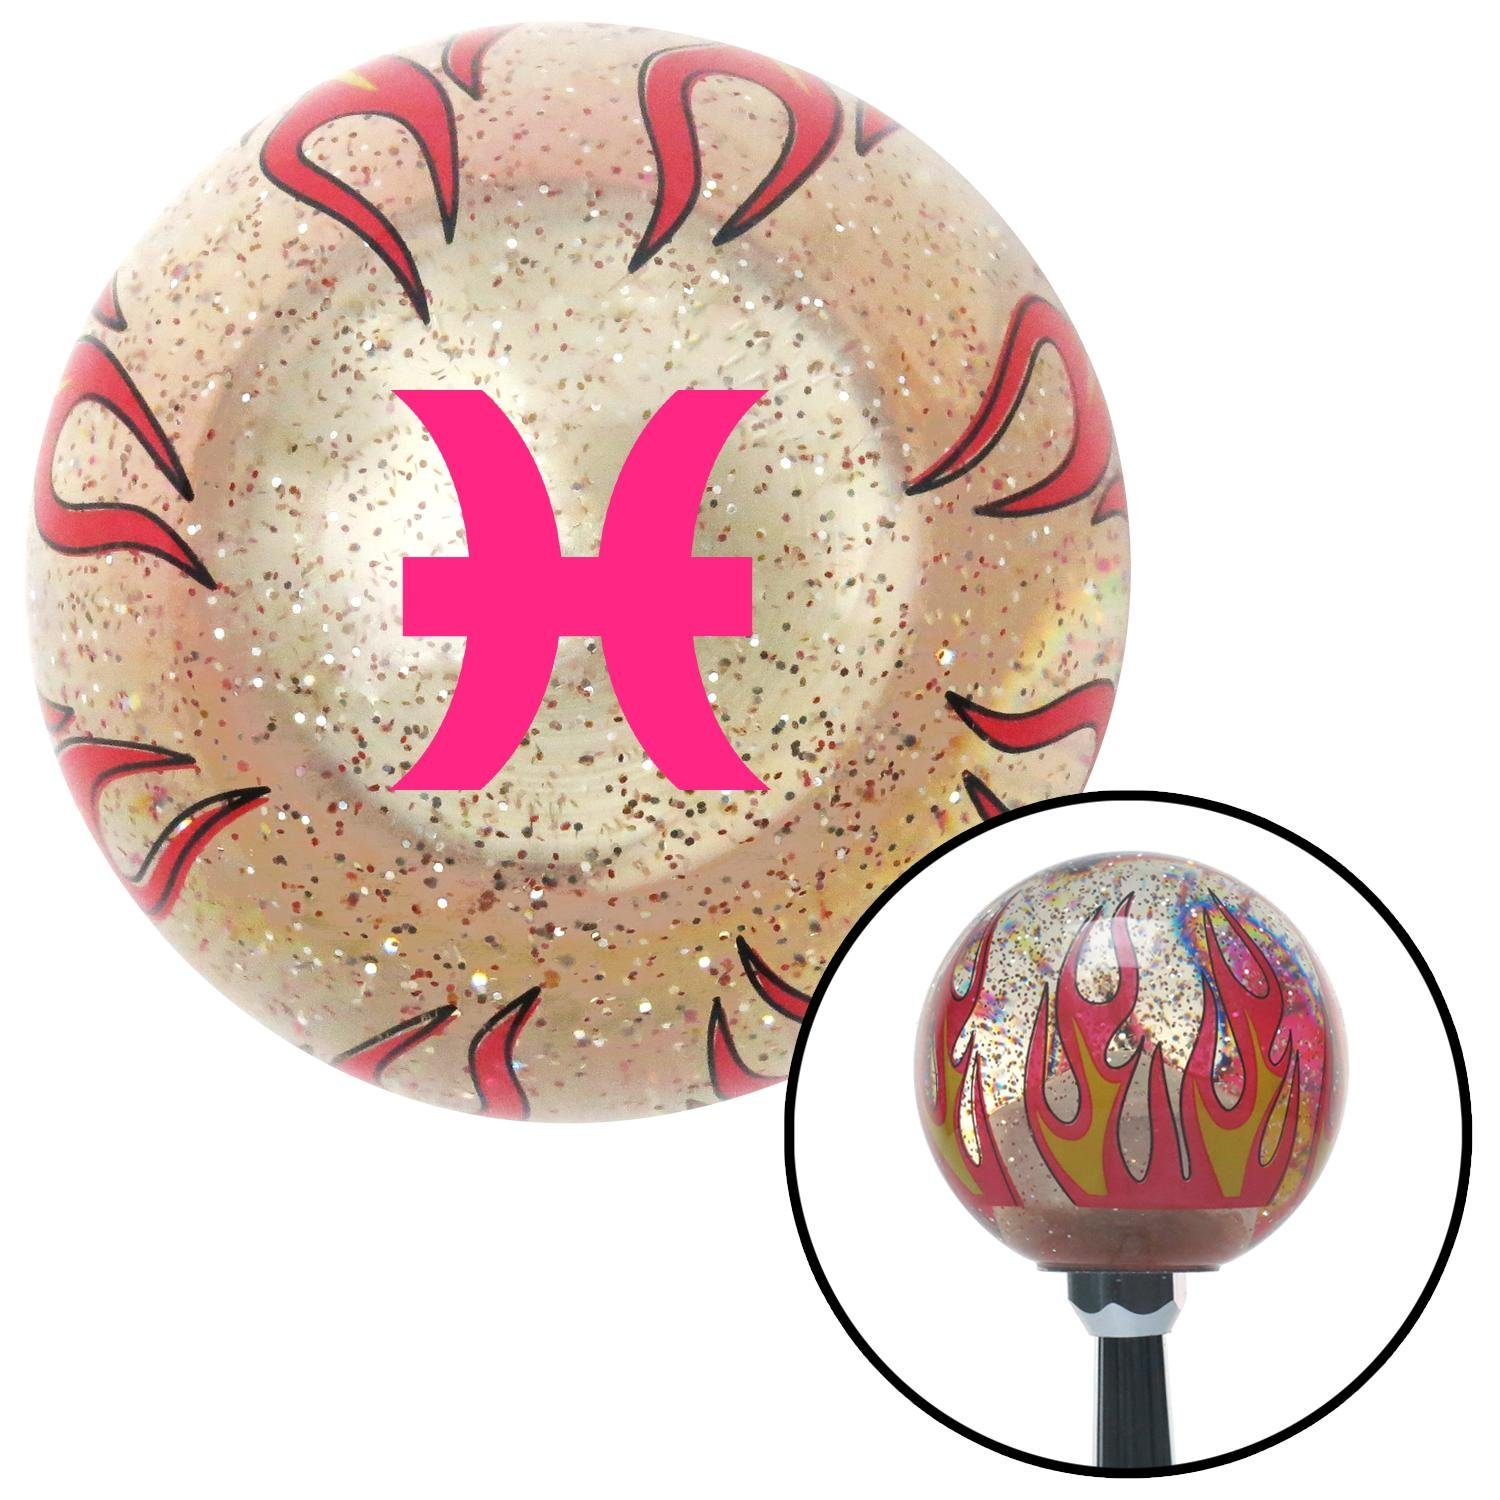 American Shifter 295649 Shift Knob Pink Pisces Clear Flame Metal Flake with M16 x 1.5 Insert